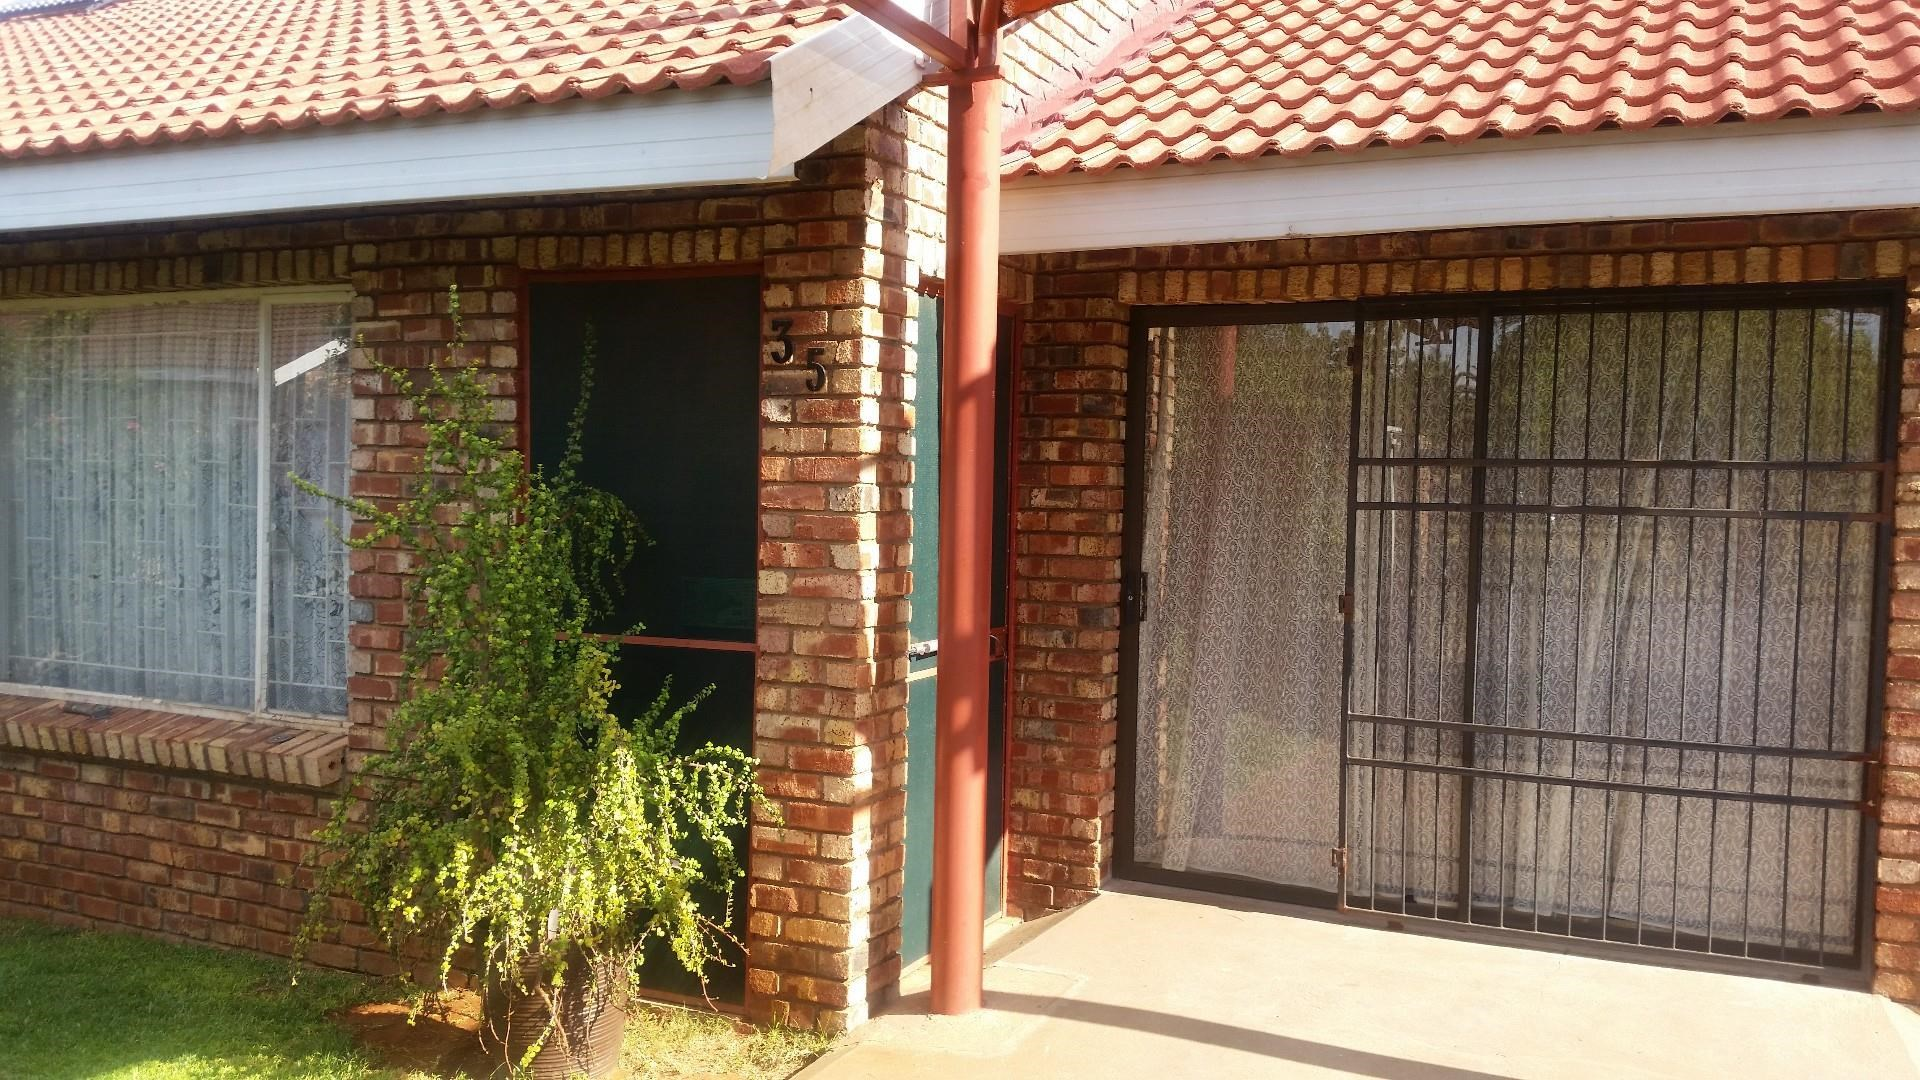 3 Bedroom House for Sale in South Ridge